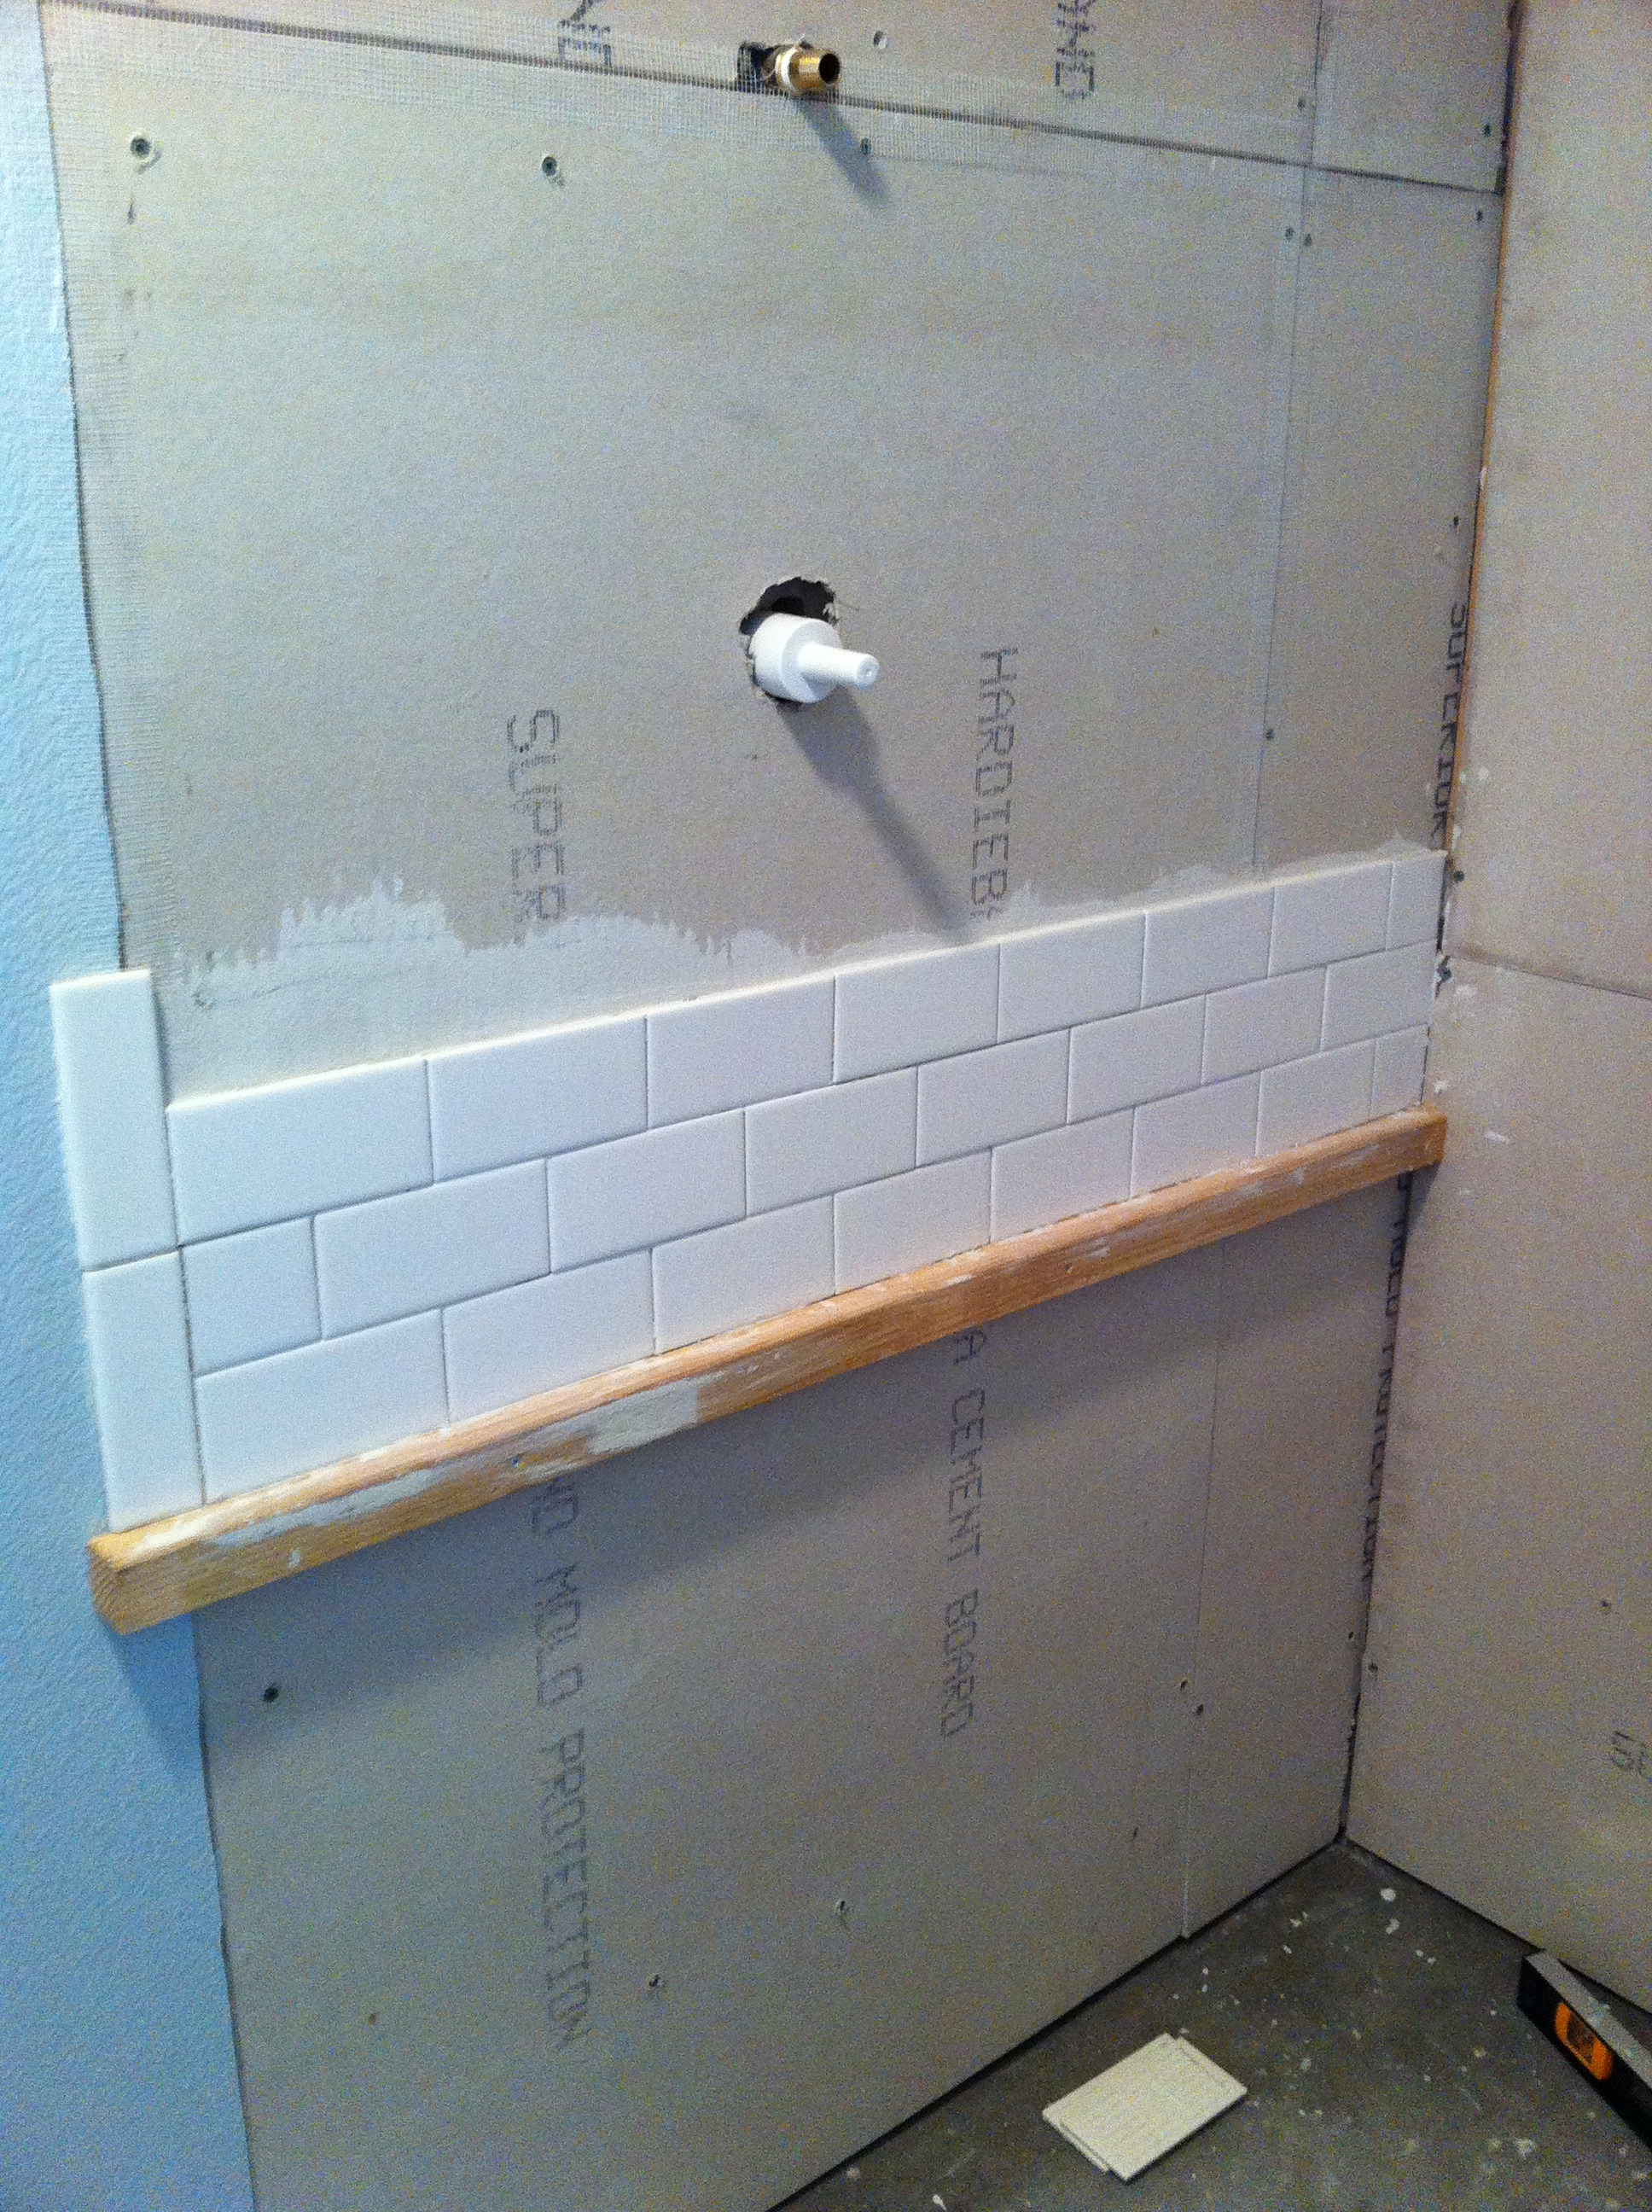 Subway tile teller all about it a teaser photo subway tile installation commences dailygadgetfo Image collections